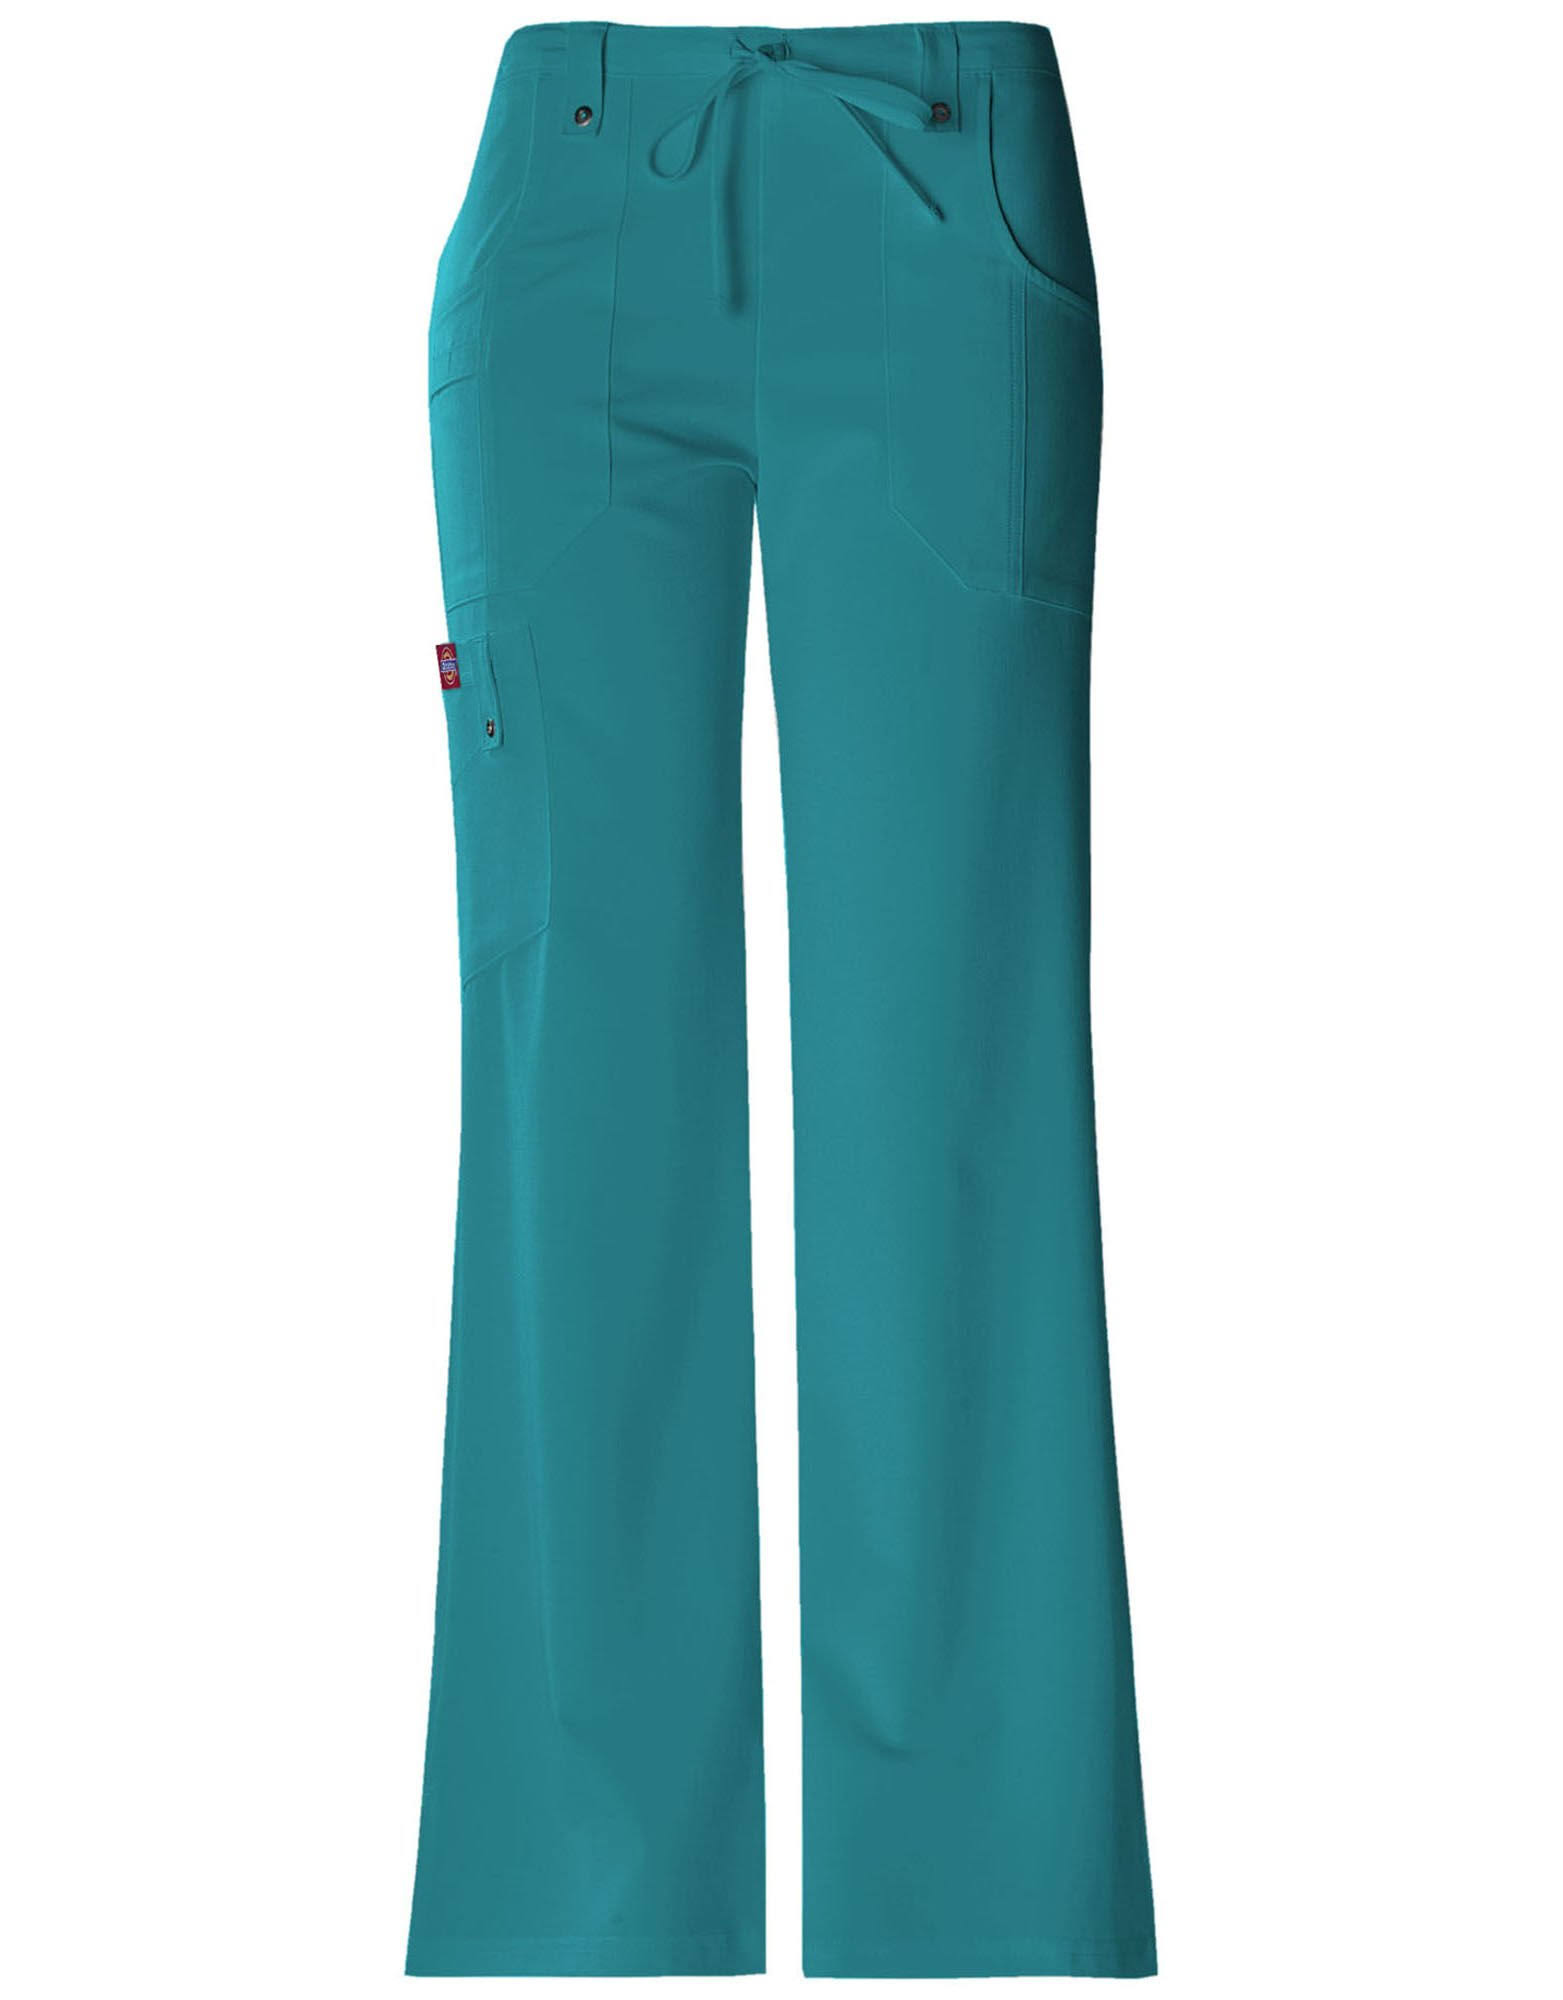 Dickies Women's Xtreme Stretch Fit Drawstring Flare Leg Pant - Teal, 2XSmall Petite